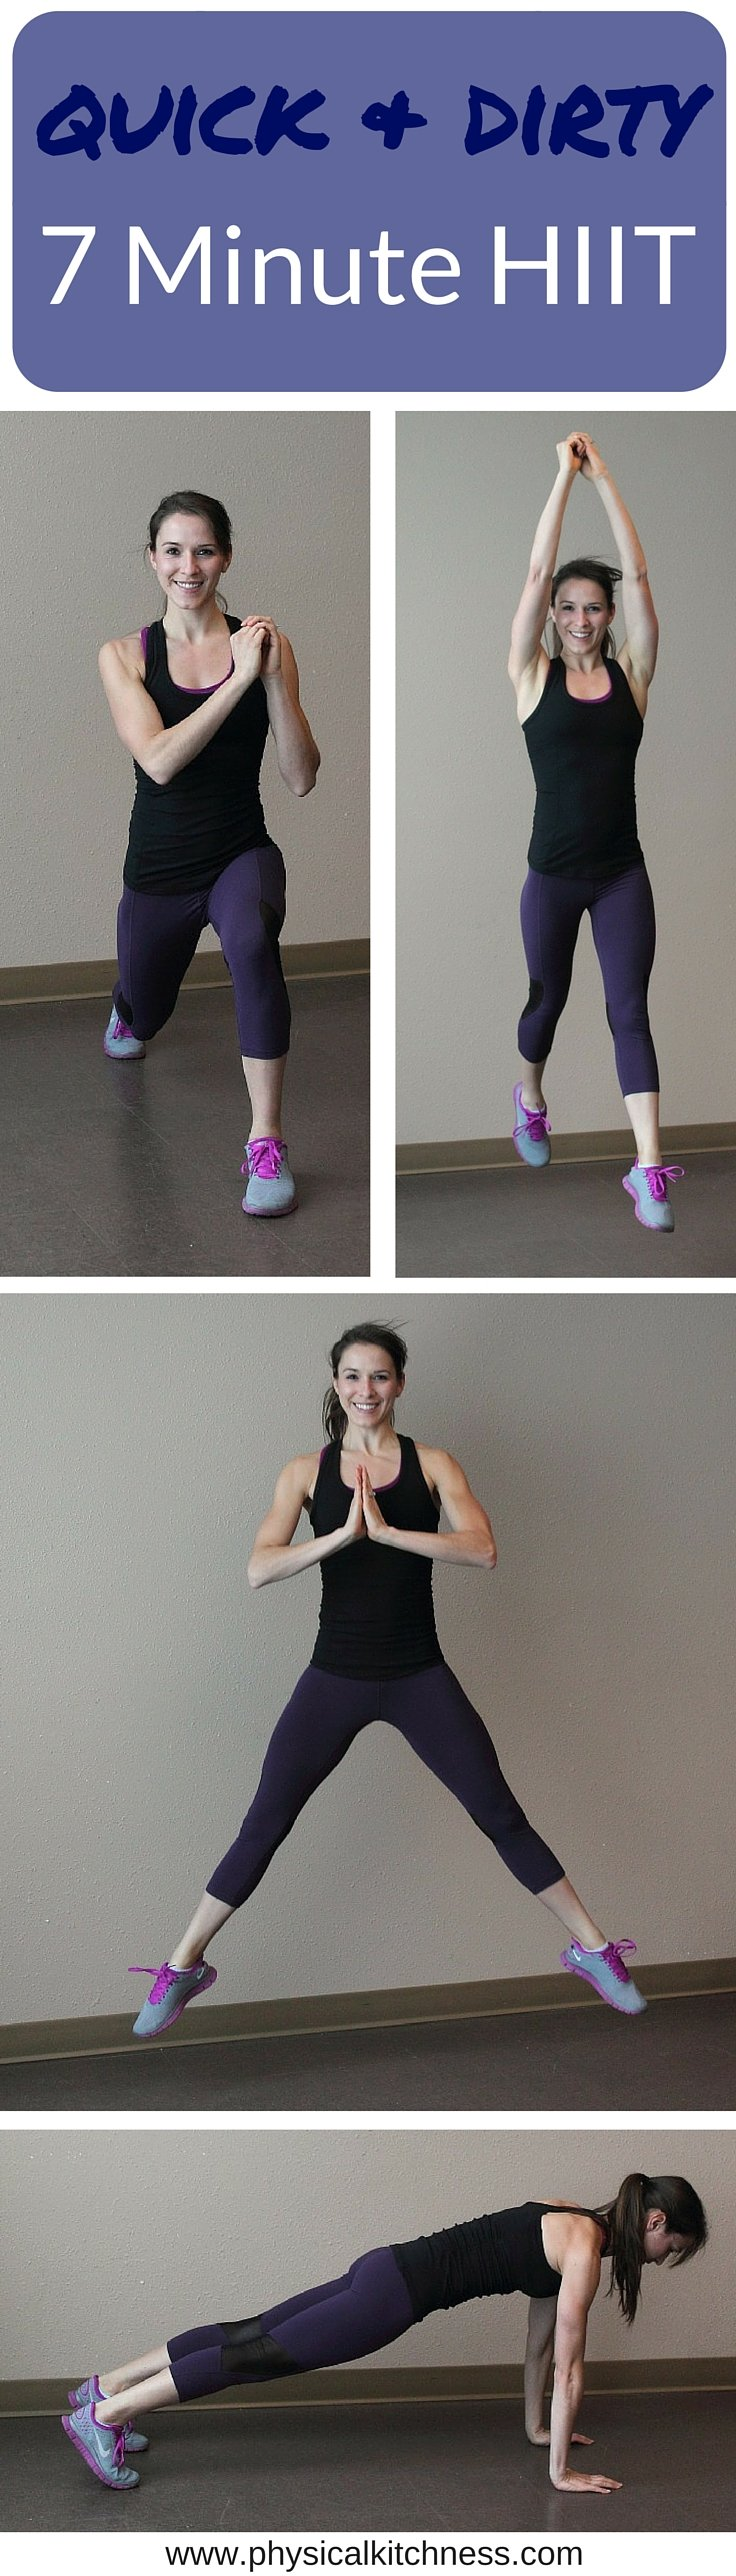 7 minutes is all you need for this quick and dirty HIIT workout. 3 moves, ultimate total body cardio workout!